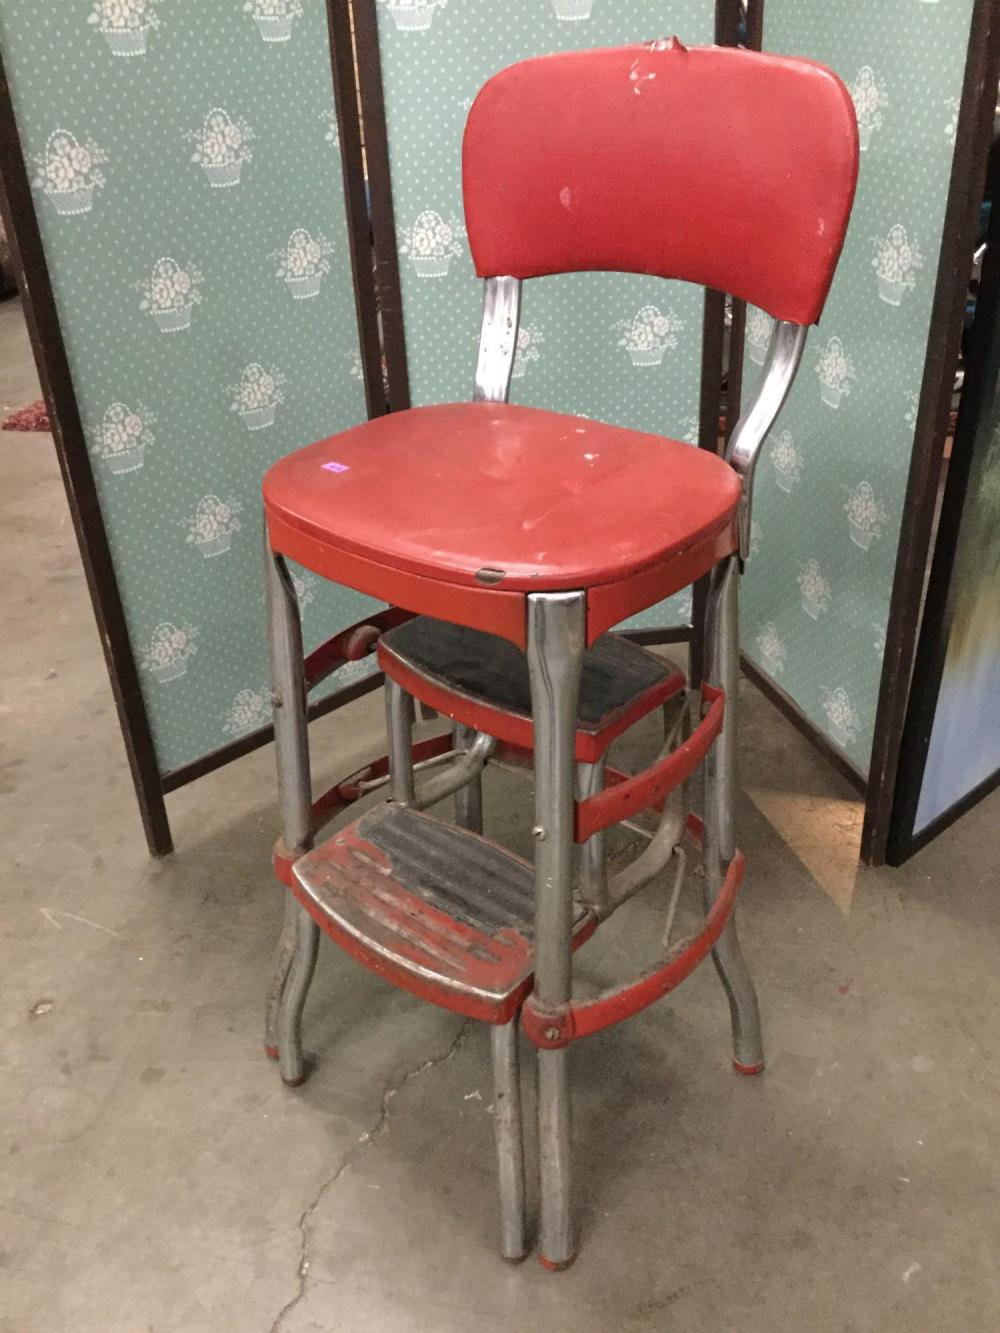 Sensational Vintage Chrome And Red Vinyl Step Chair Inzonedesignstudio Interior Chair Design Inzonedesignstudiocom